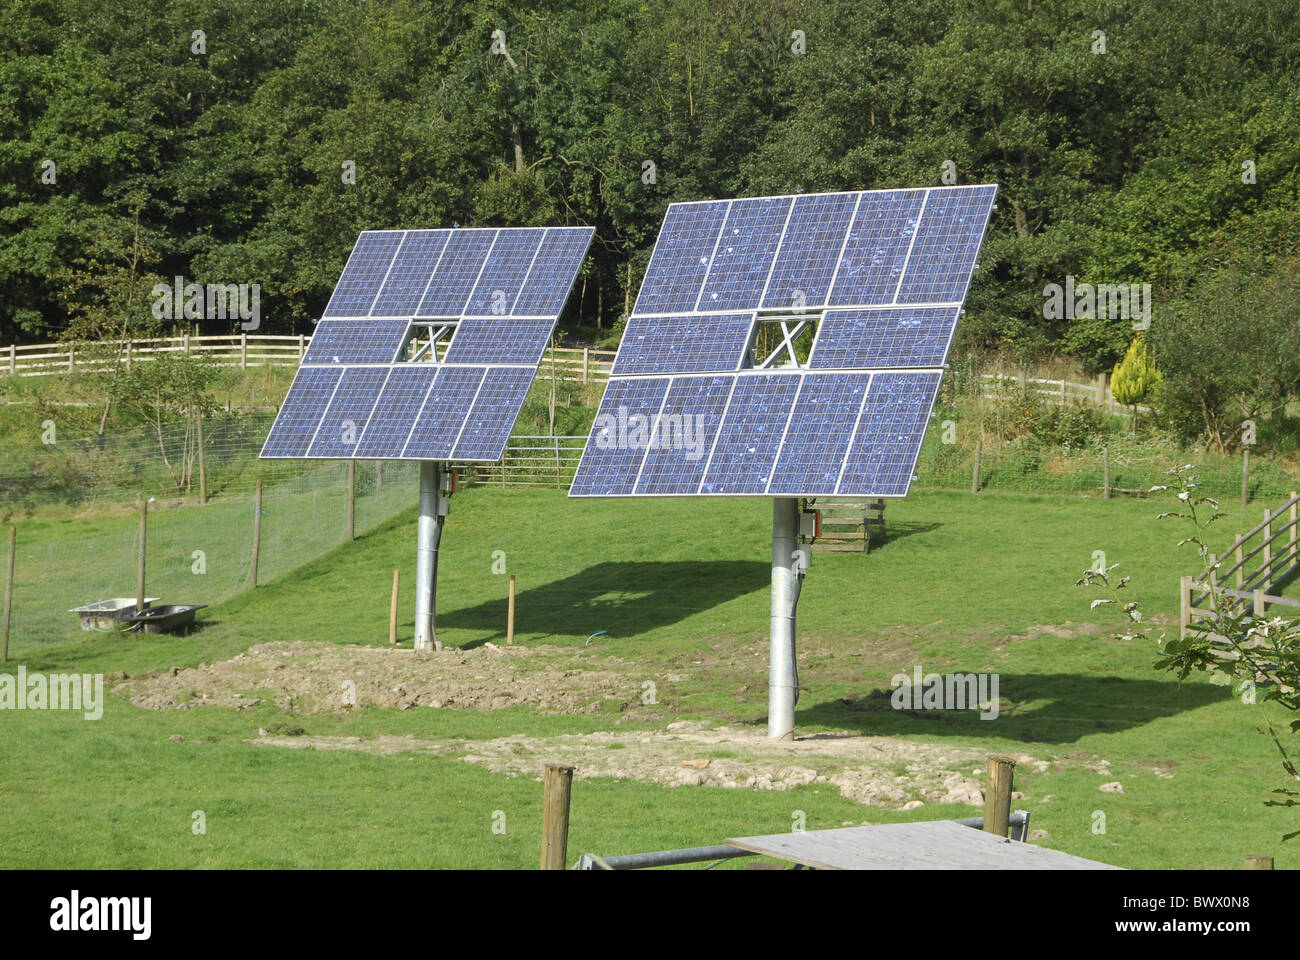 Solar panels used provide electricity hot water - Stock Image